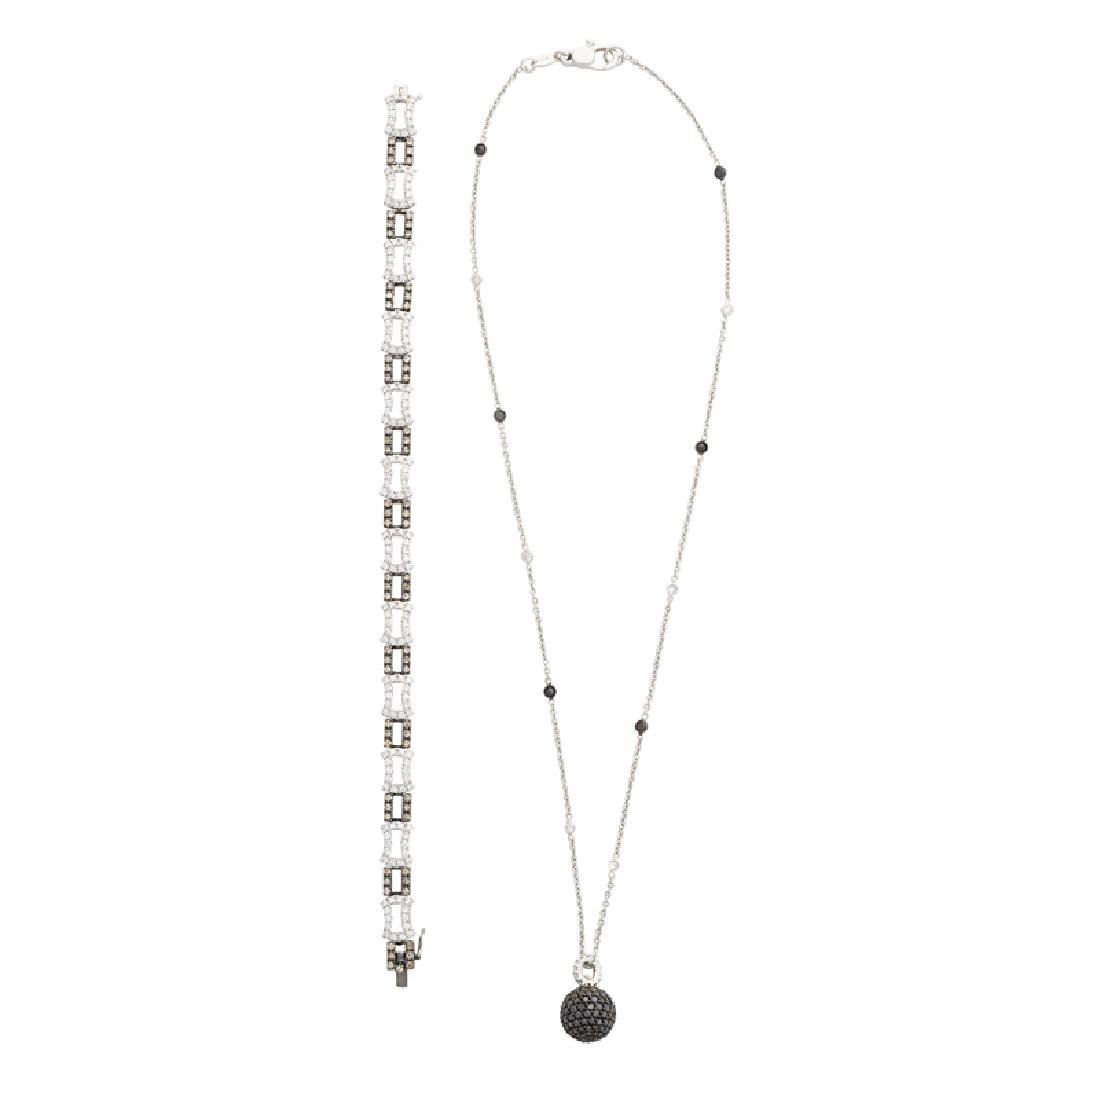 DIAMOND & WHITE GOLD BRACELET & PENDANT NECKLACE